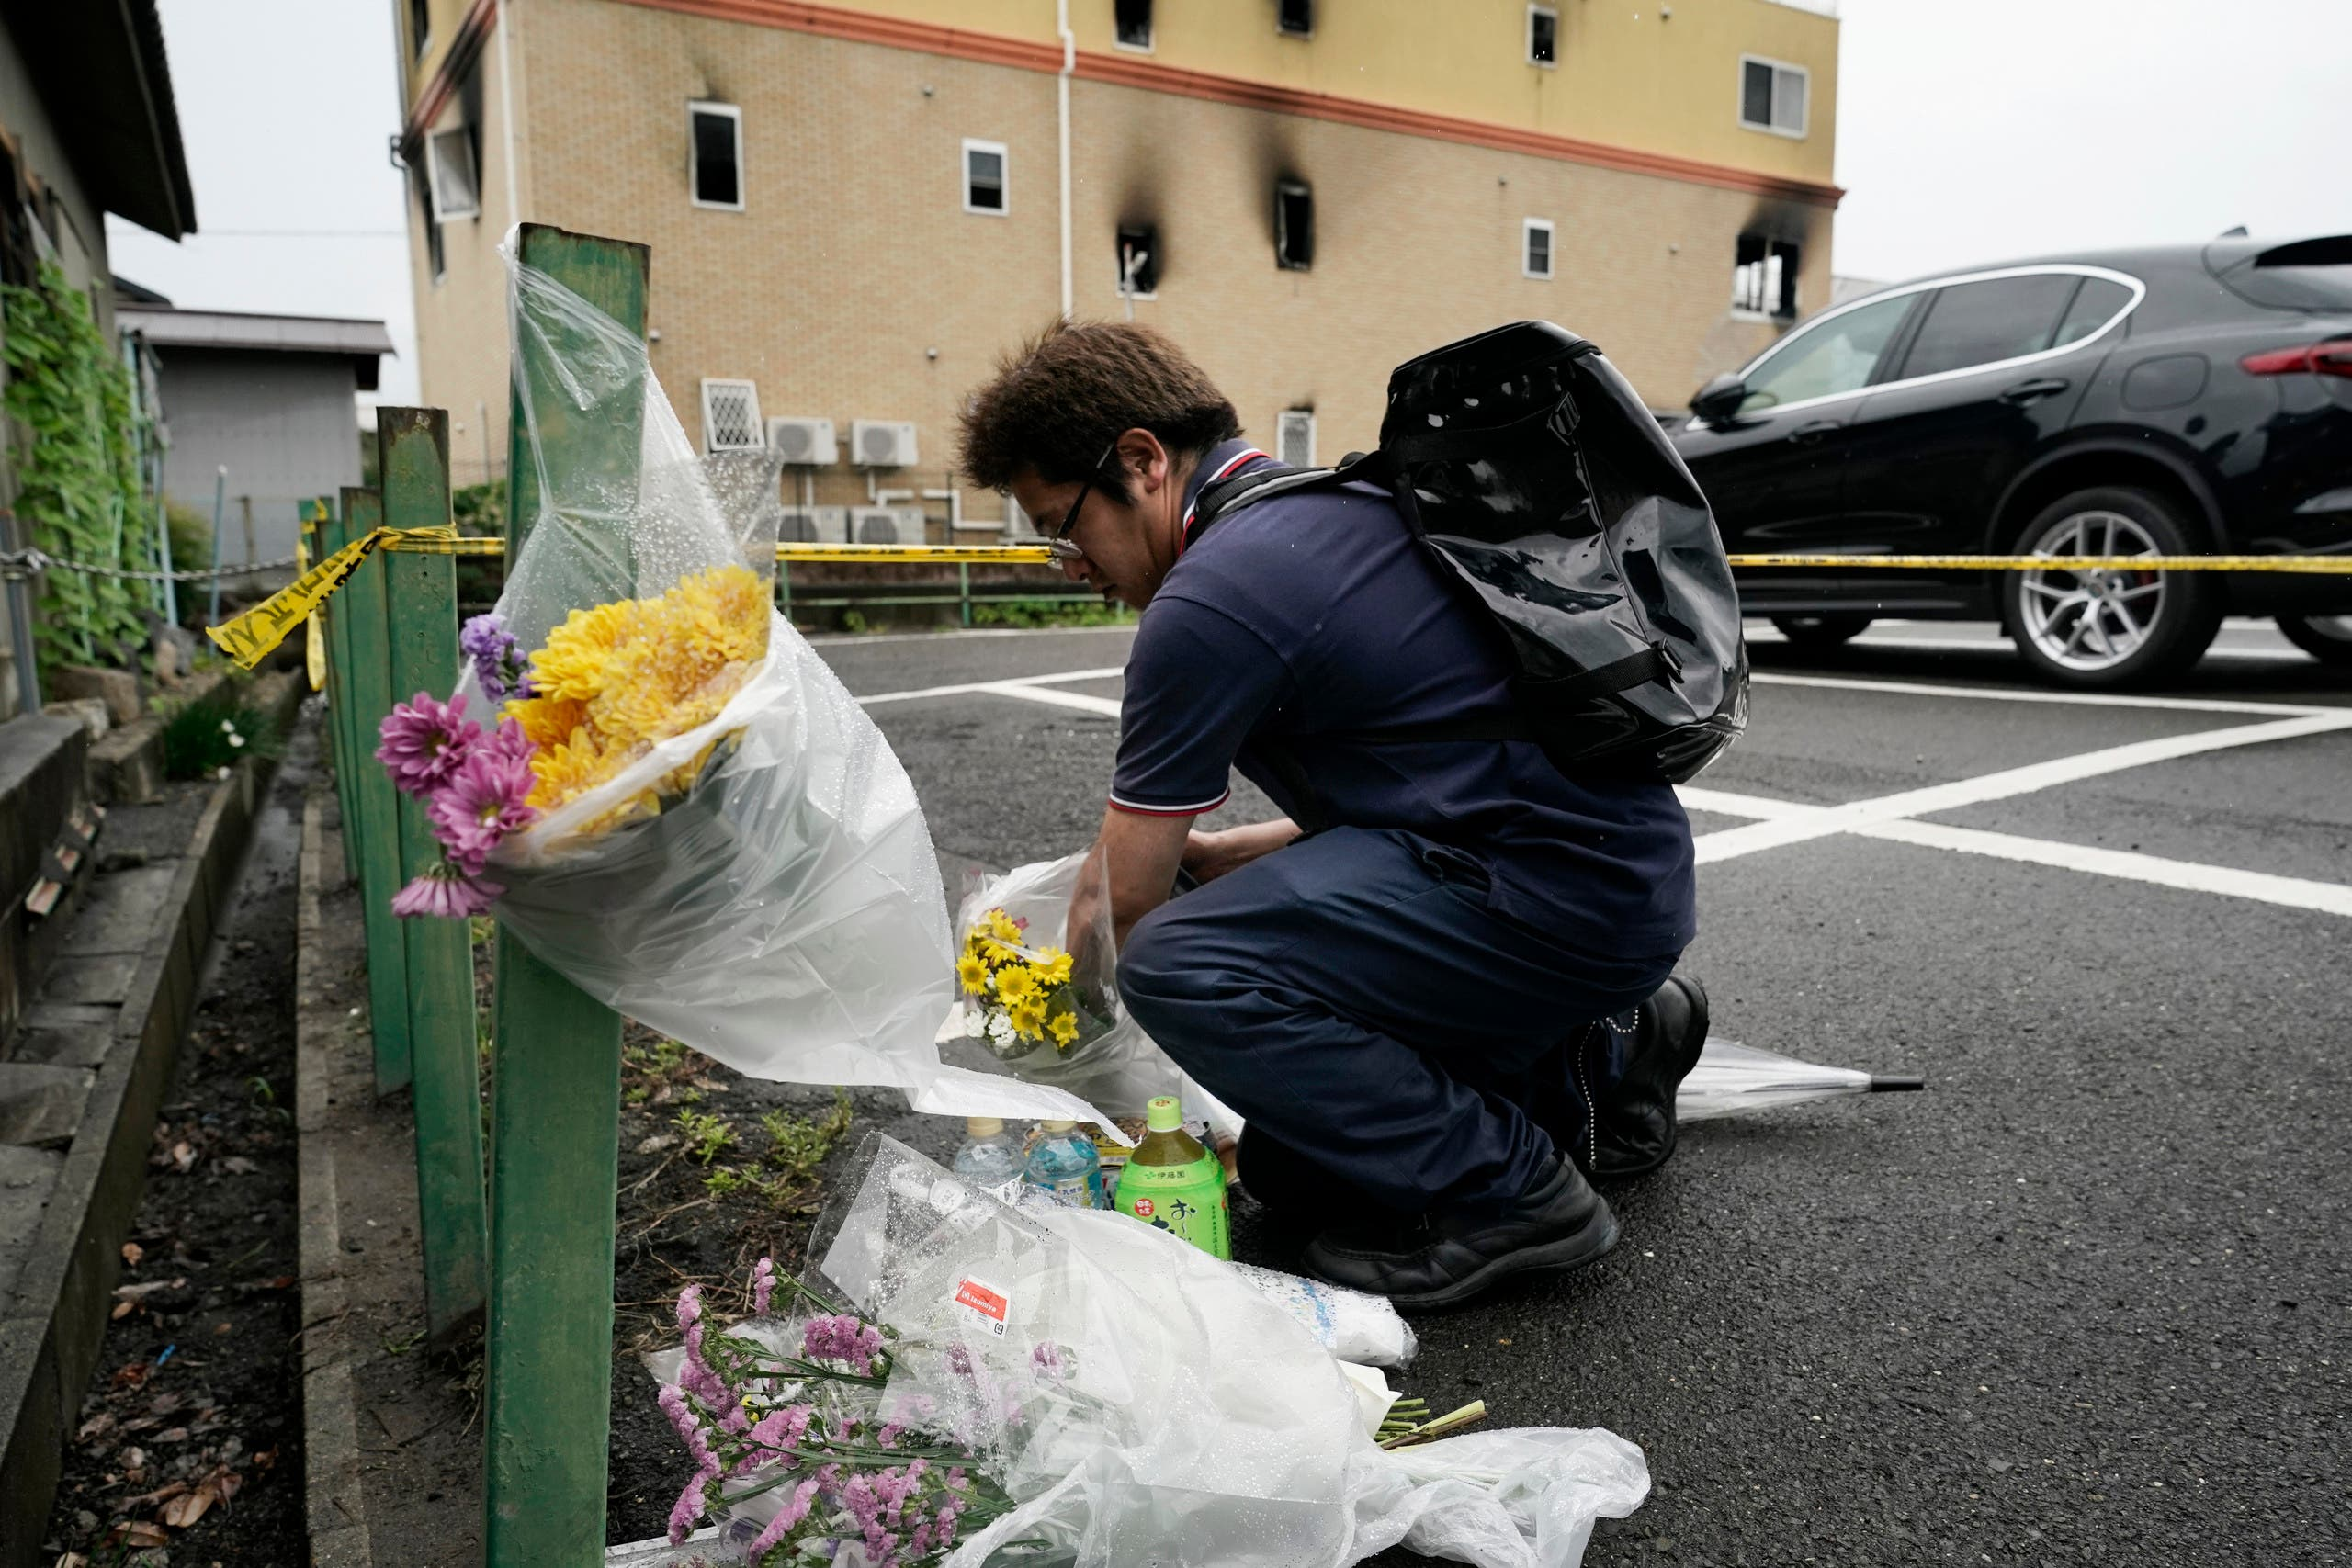 A man places flowers outside the Kyoto Animation Studio building consumed in an arson attack in Kyoto, Japan. (AP)